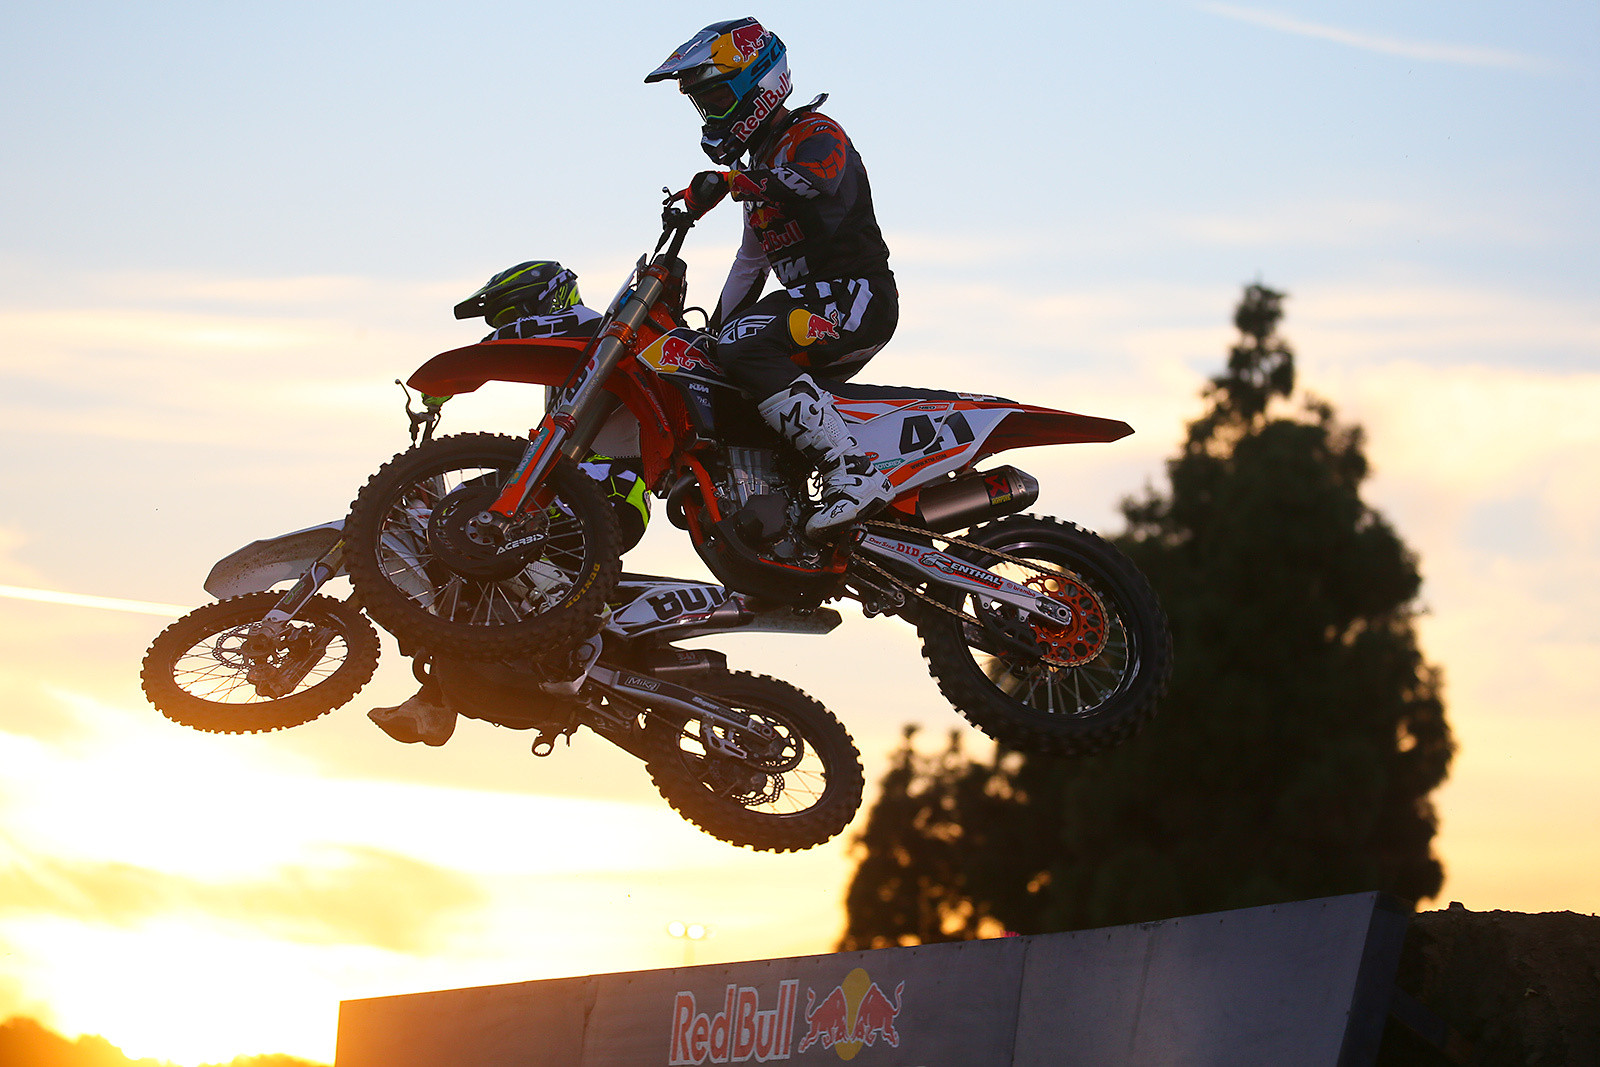 Trey Canard and Jeff Alessi - Photo Blast: Red Bull Straight Rhythm - Motocross Pictures - Vital MX